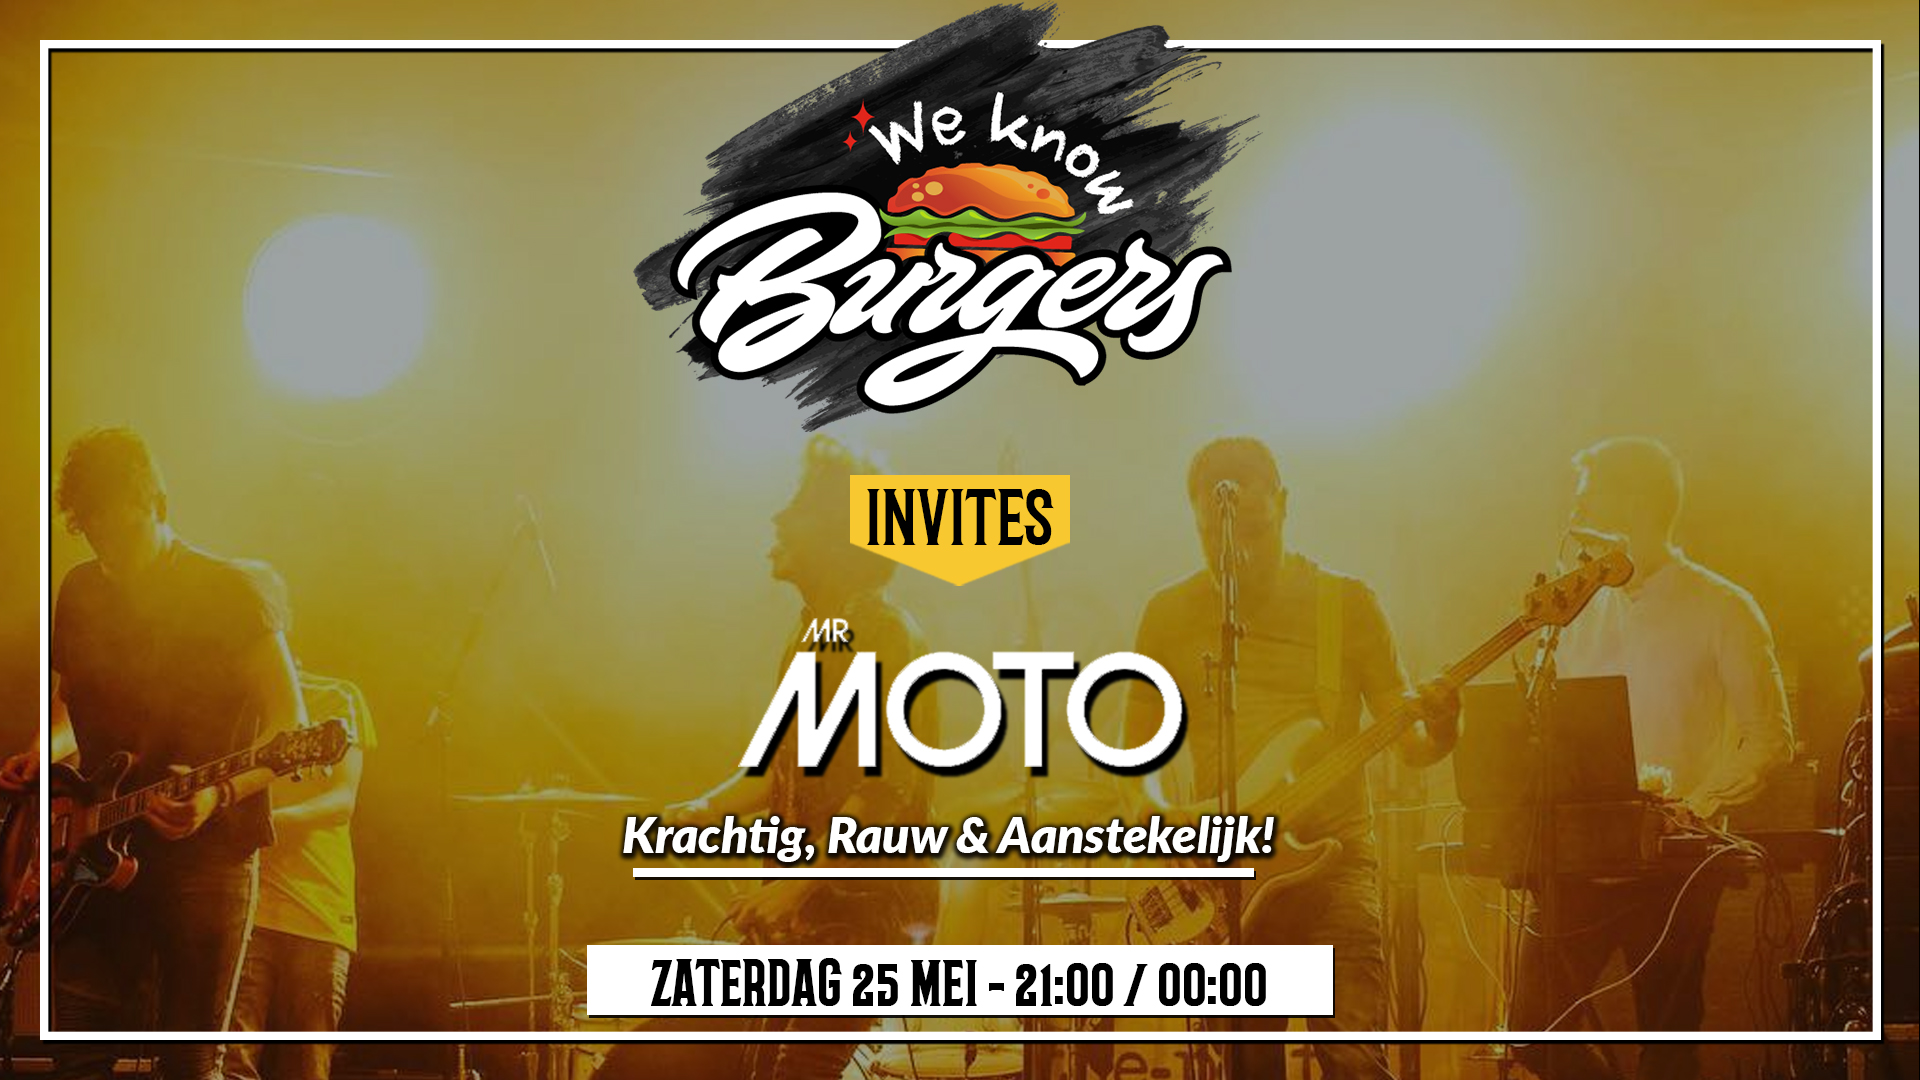 Mr moto live we know burgers